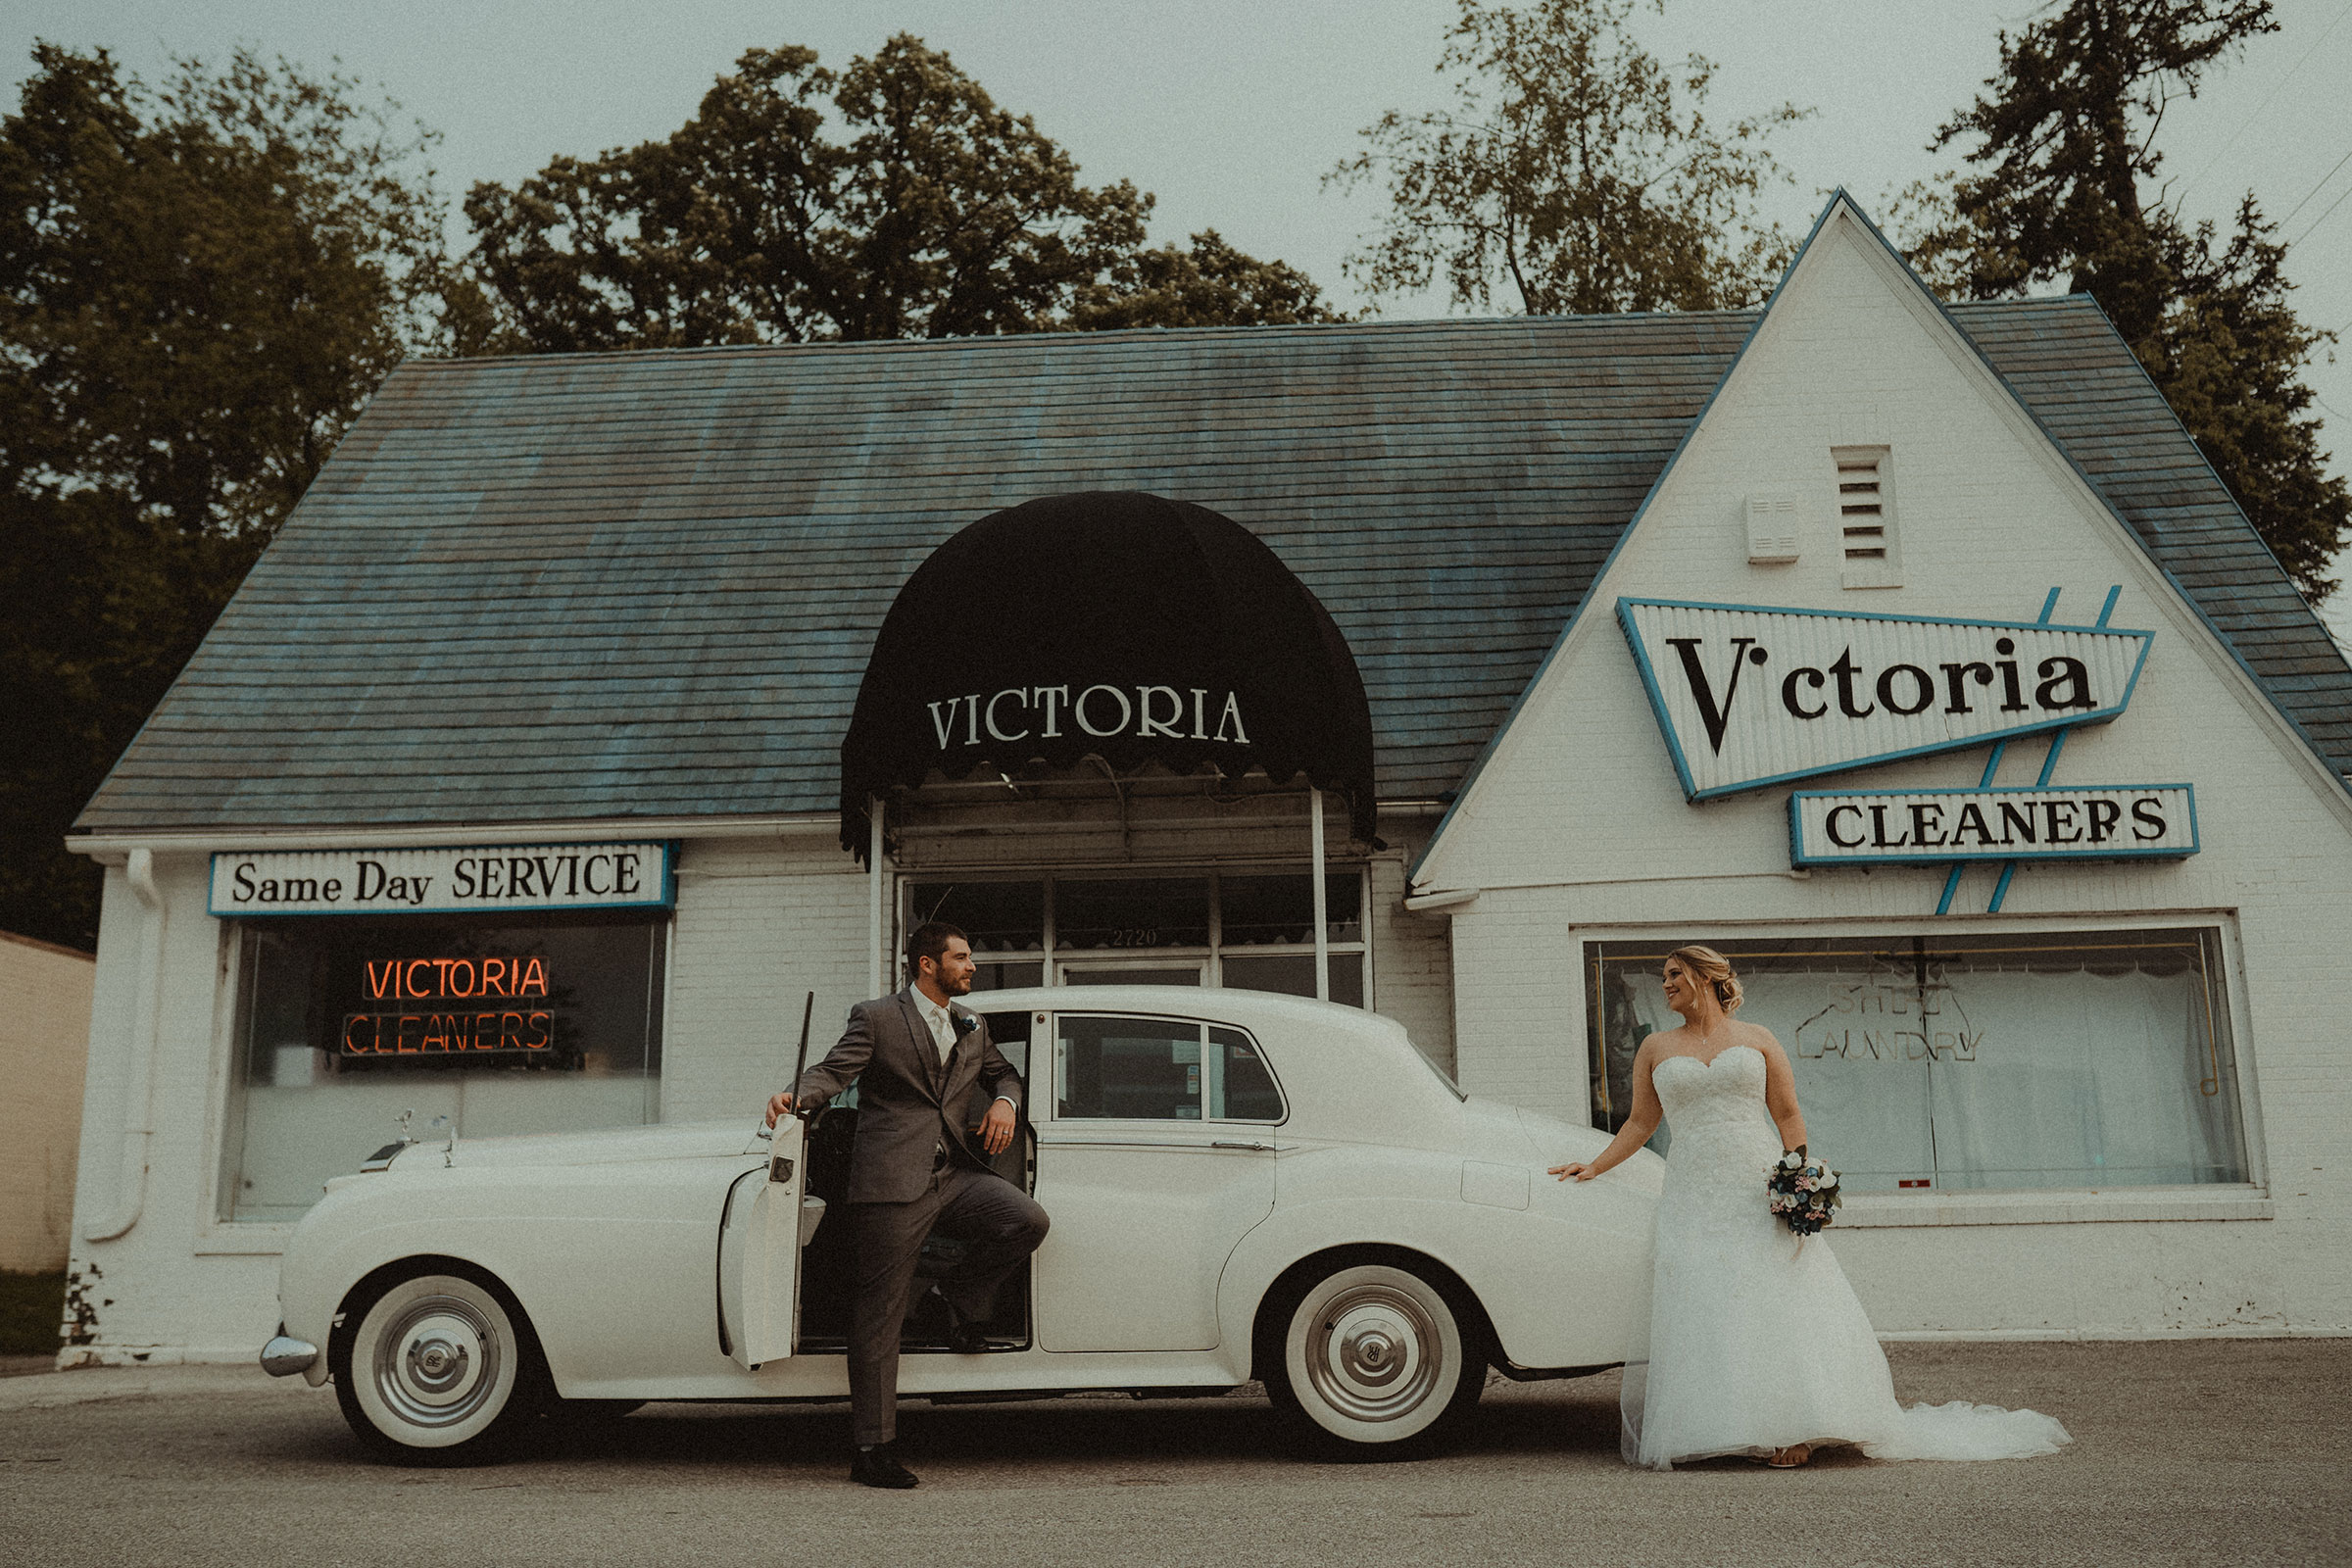 bride-and-groom-standing-outside-rollys-royce-in-front-of-victorias-cleaners-decades-event-center-building-desmoines-iowa-raelyn-ramey-photography..jpg